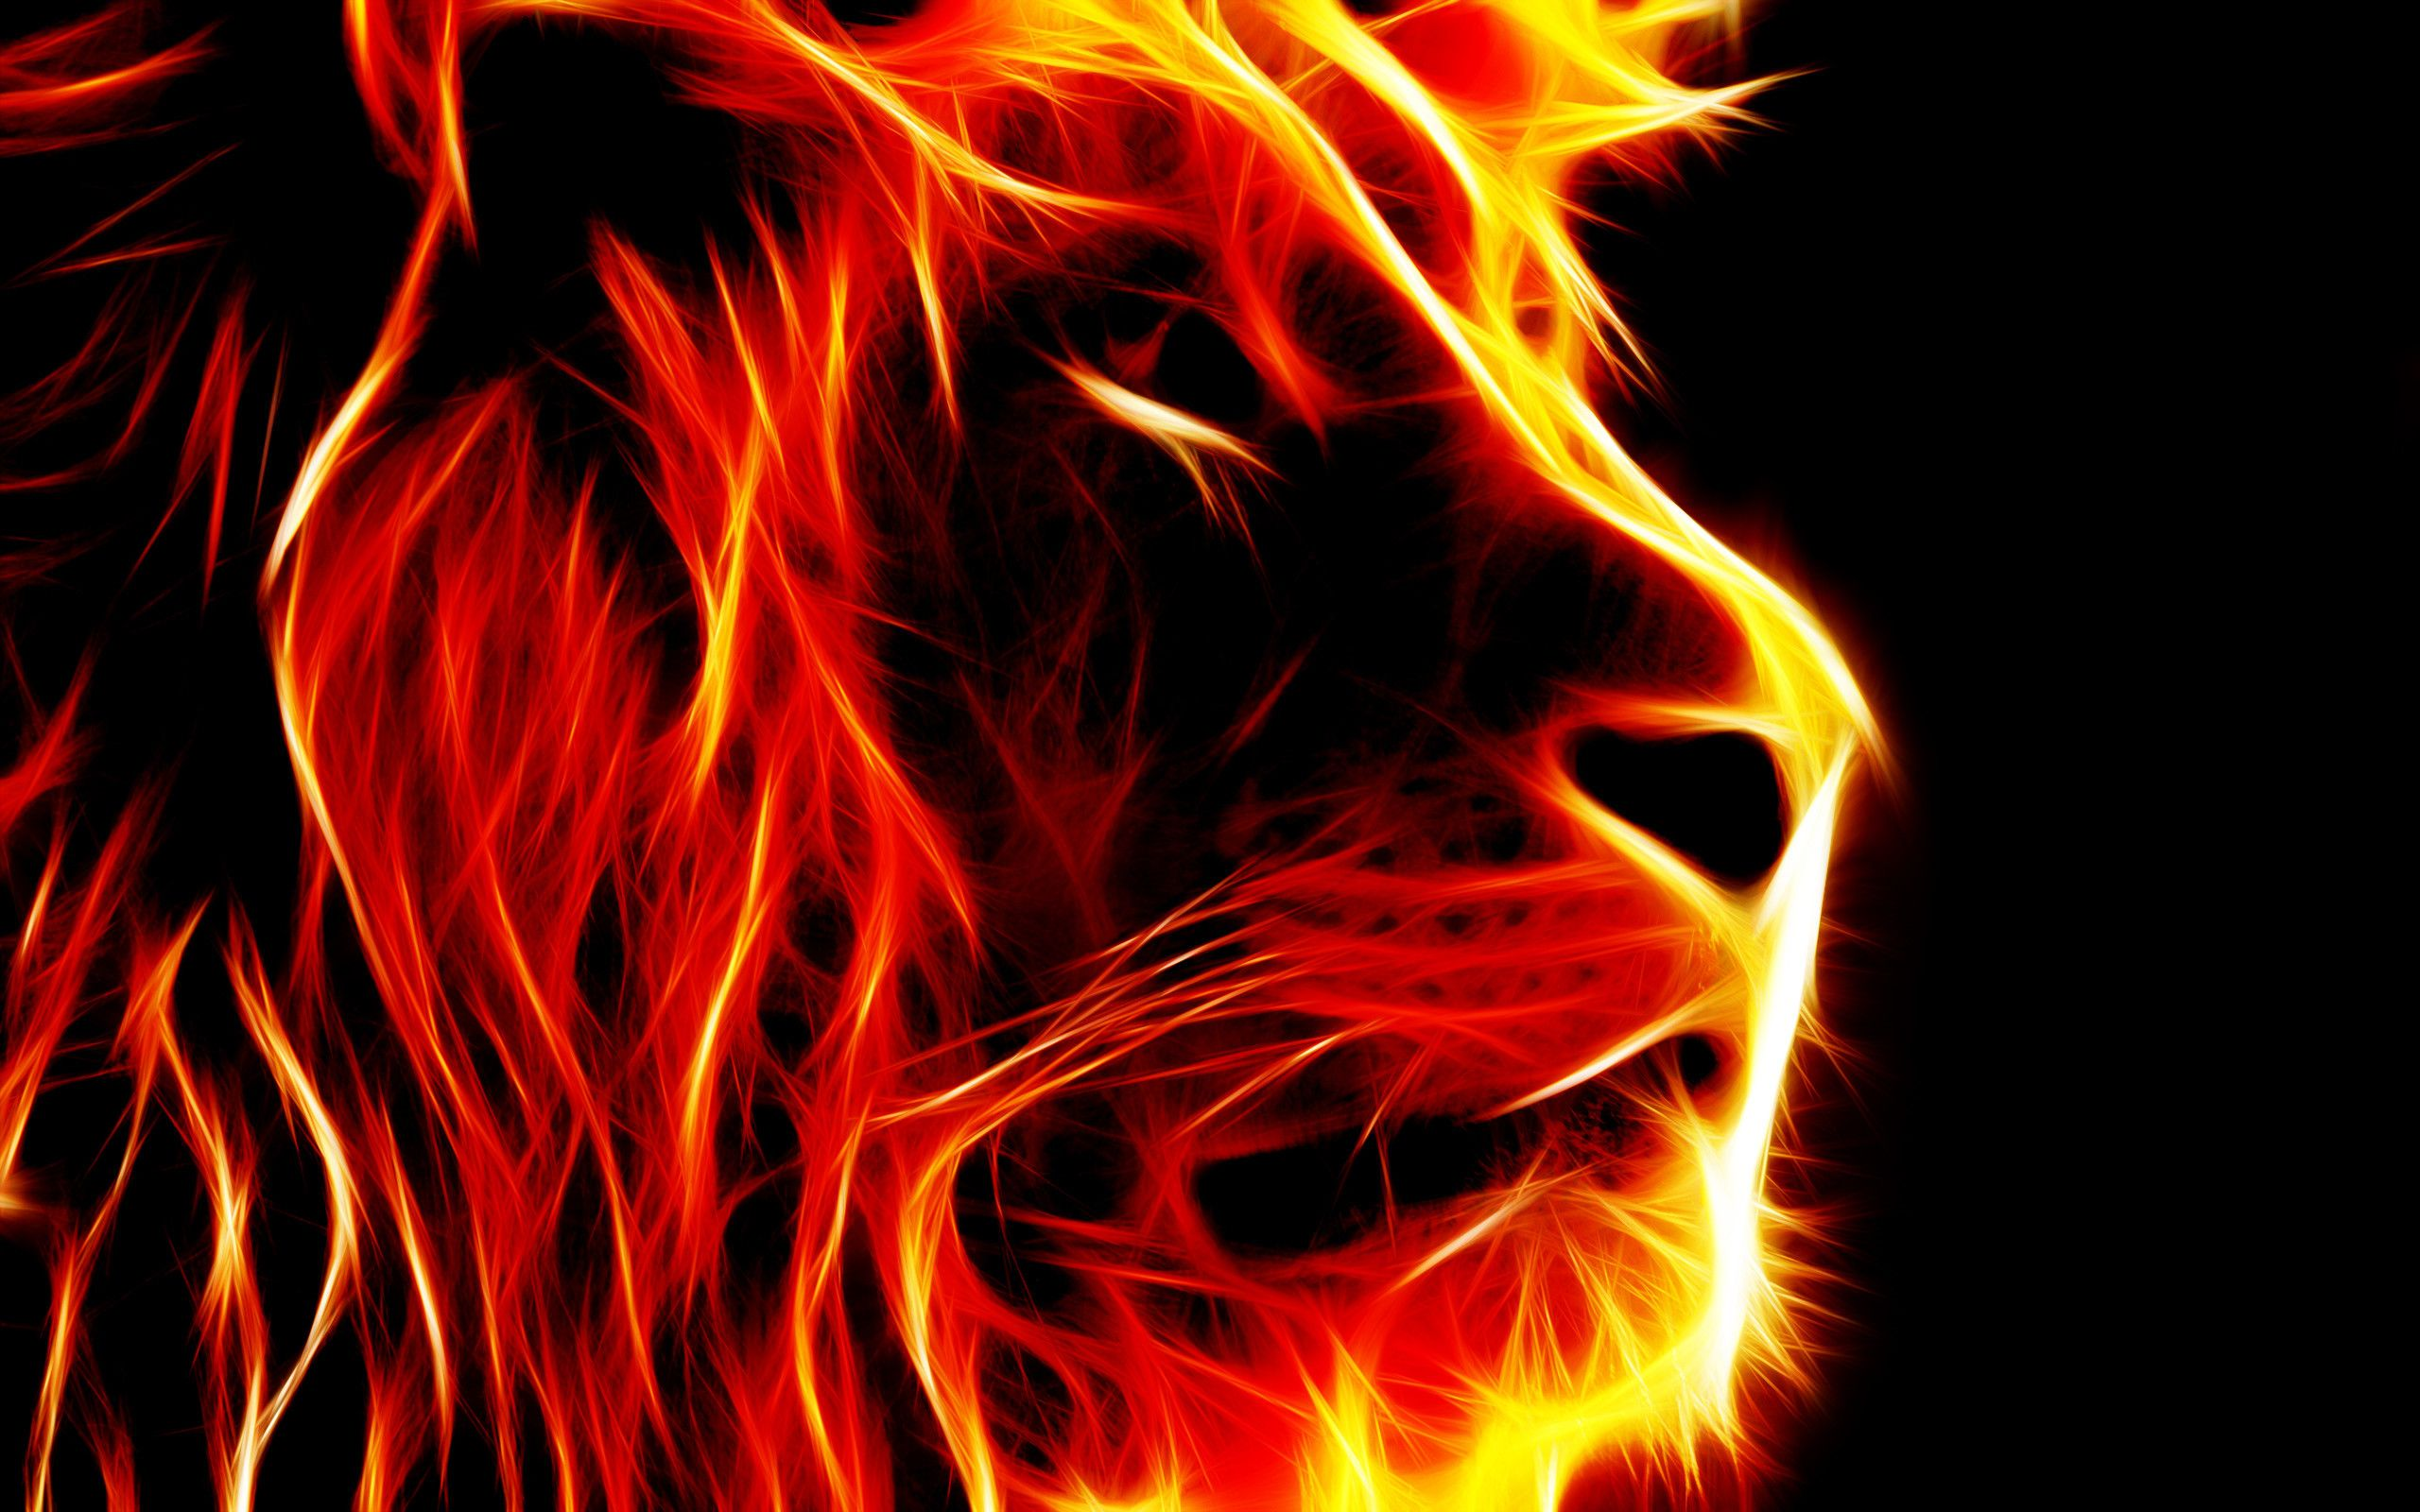 Fire Lion Wallpapers Top Free Fire Lion Backgrounds Wallpaperaccess